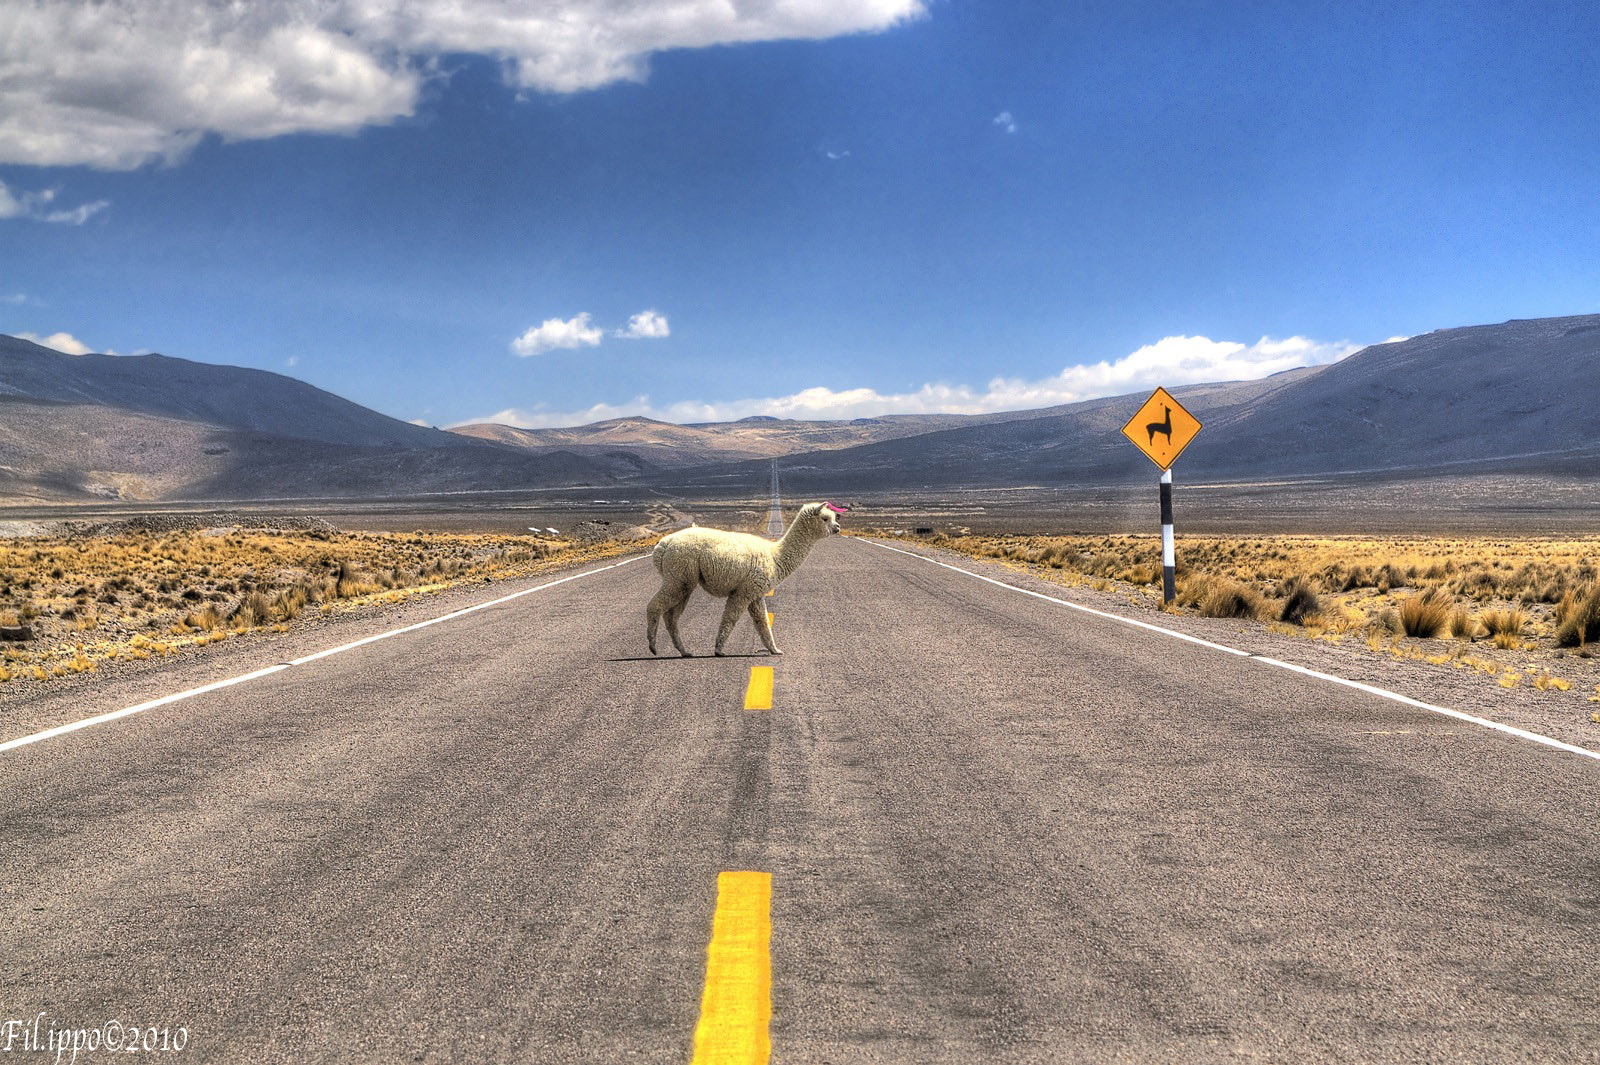 Photograph Pedestrian Alpaca by Filippo Bianchi on 500px